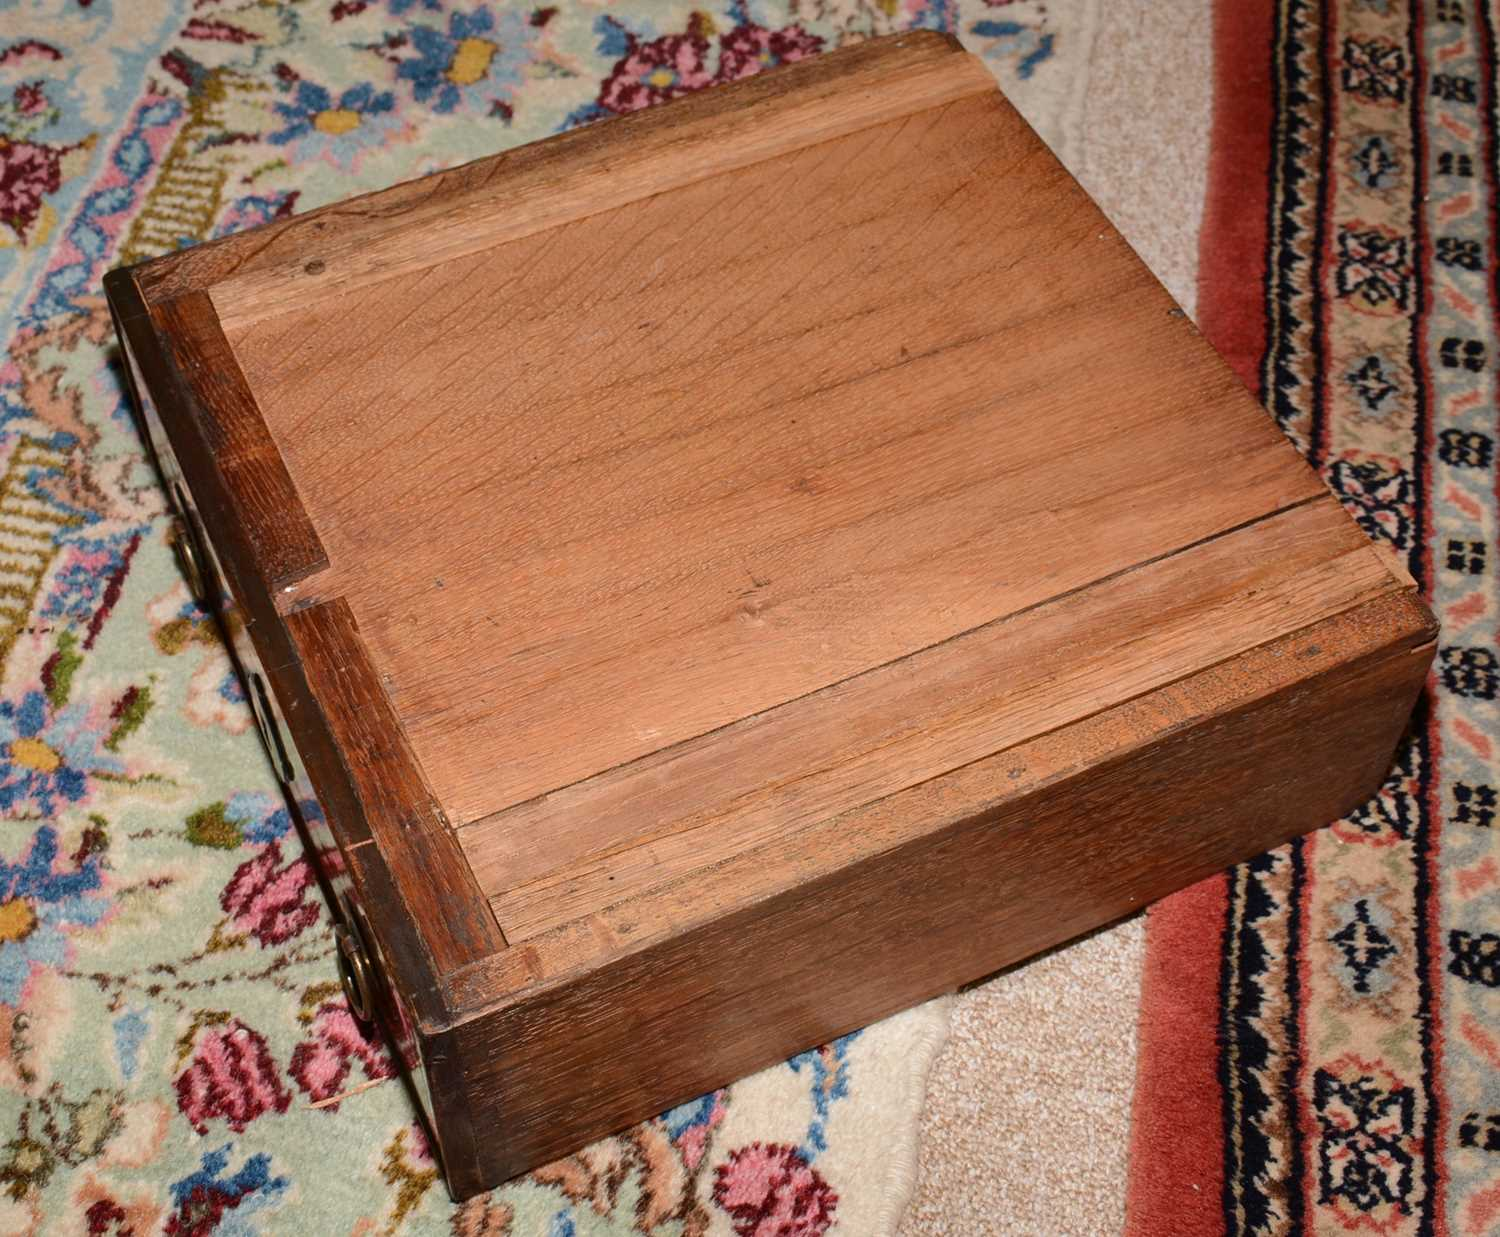 Early 18th Century walnut bachelors chest - Image 32 of 39